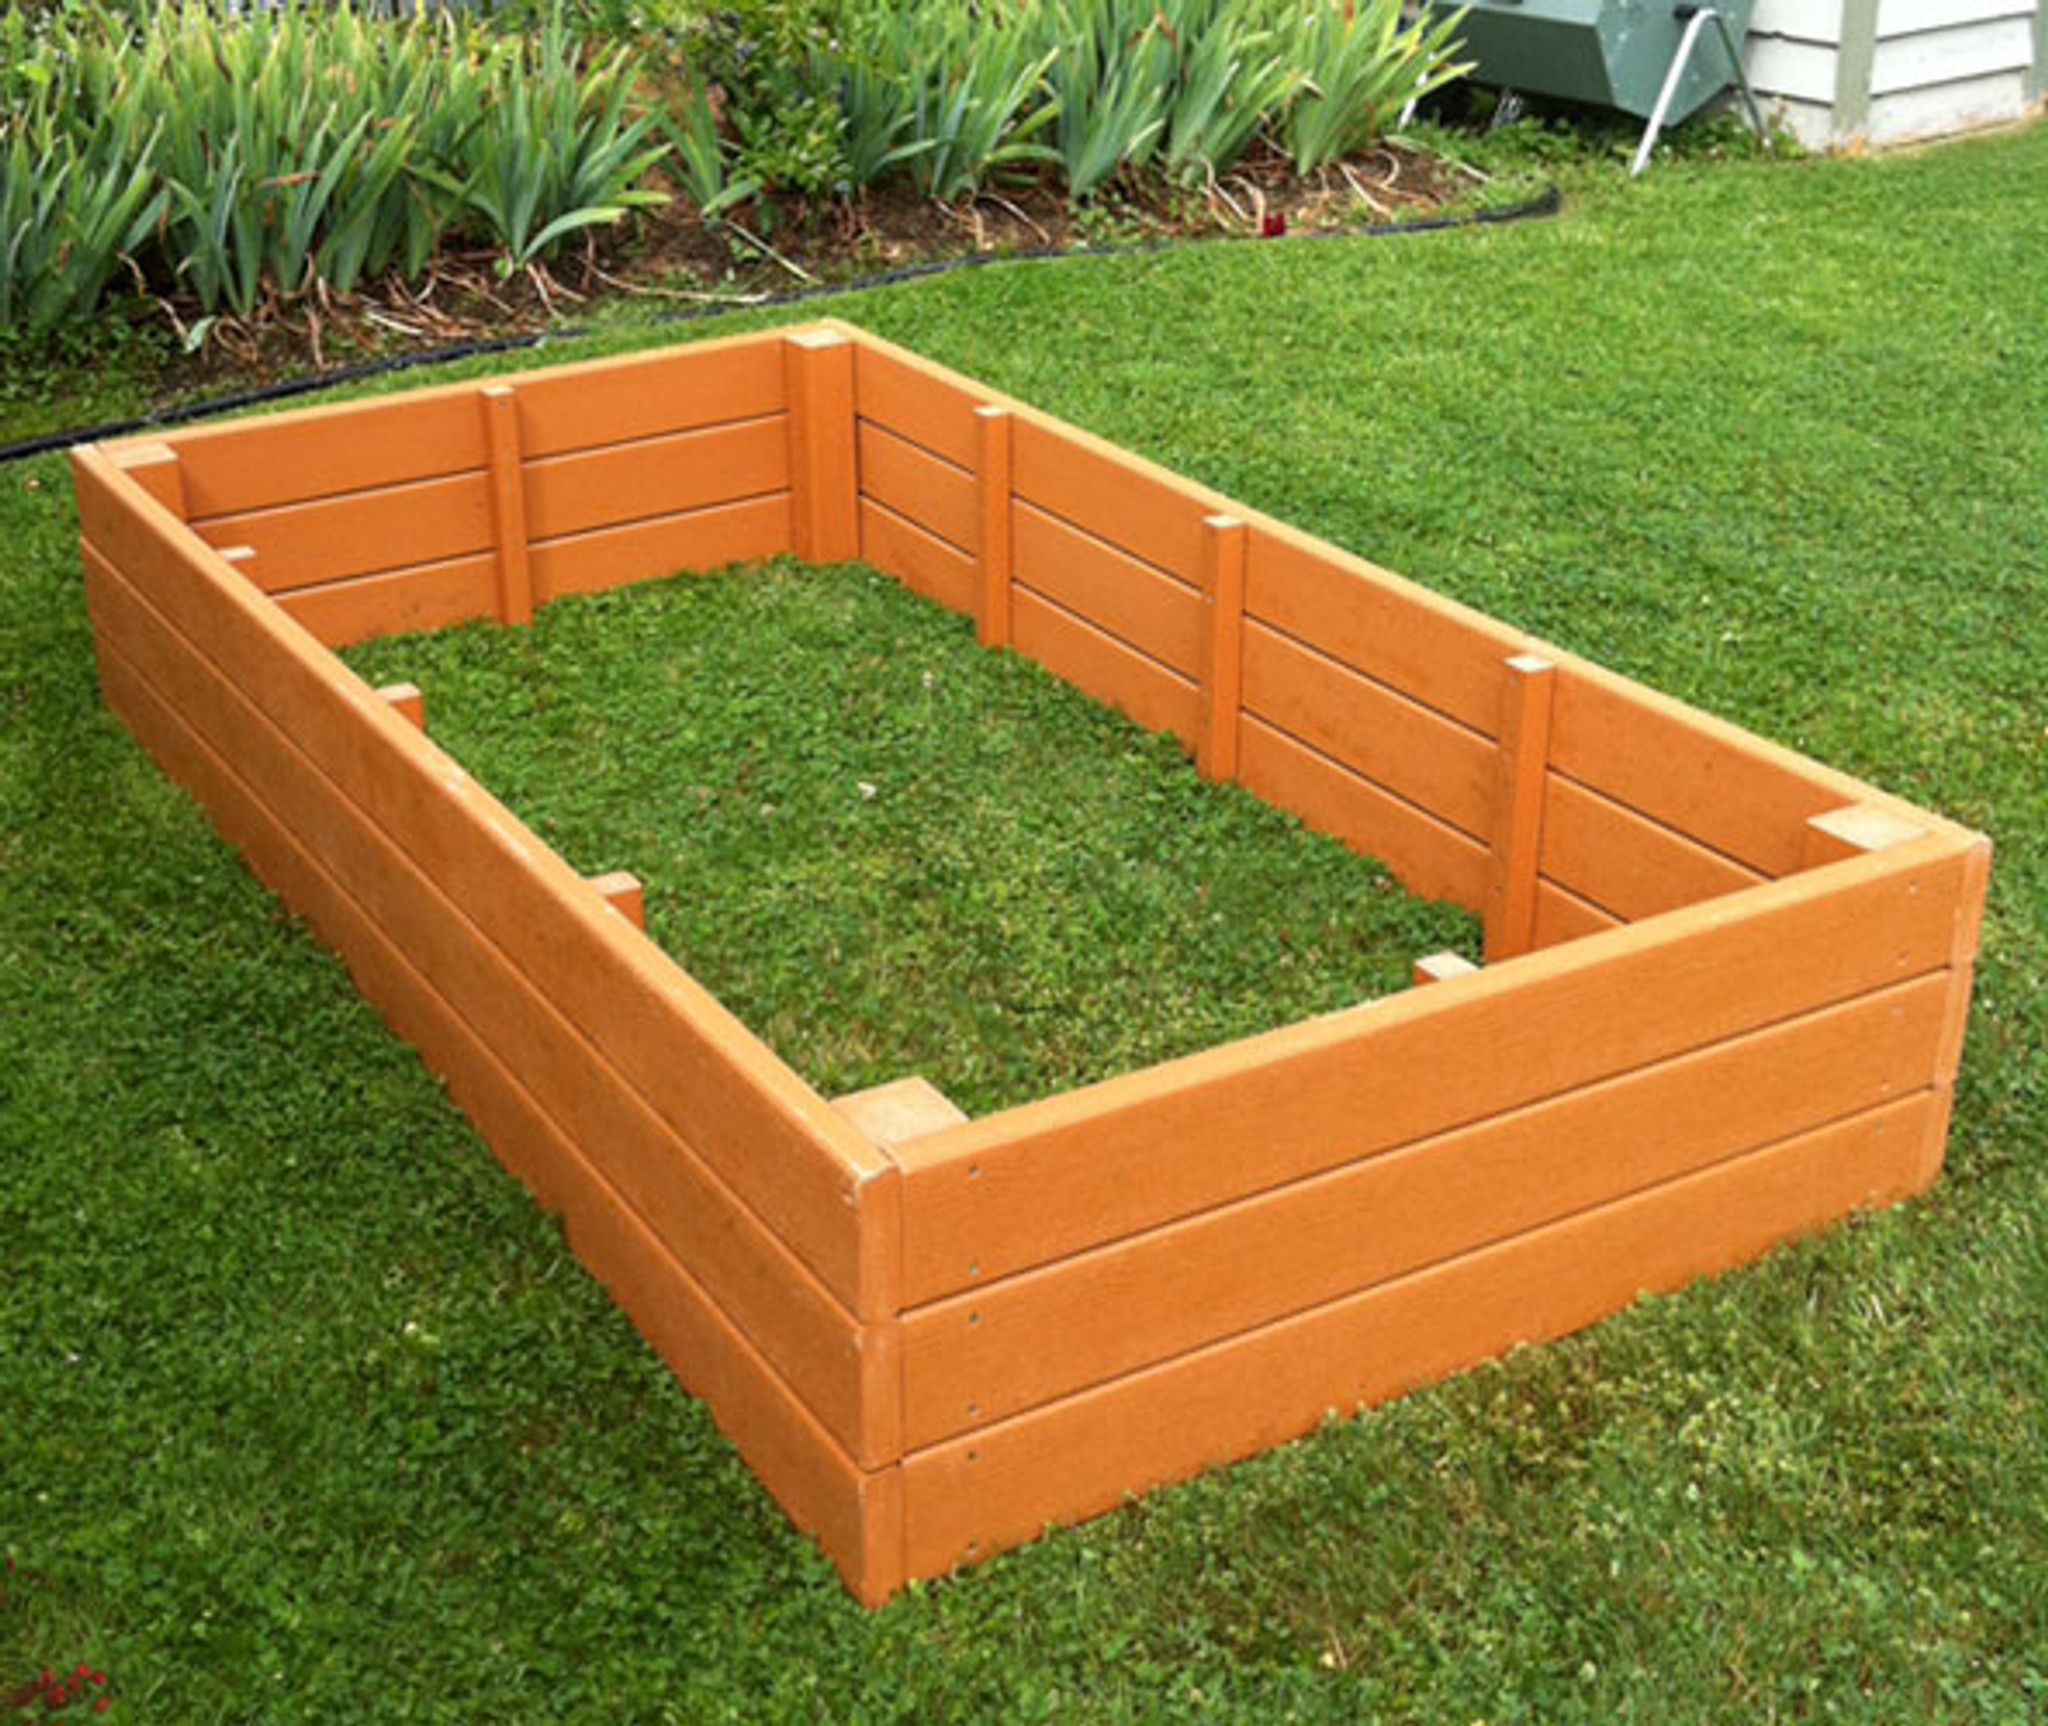 Recycled Plastic Raised Garden Bed 4 X 8 X 11 Eartheasy Com